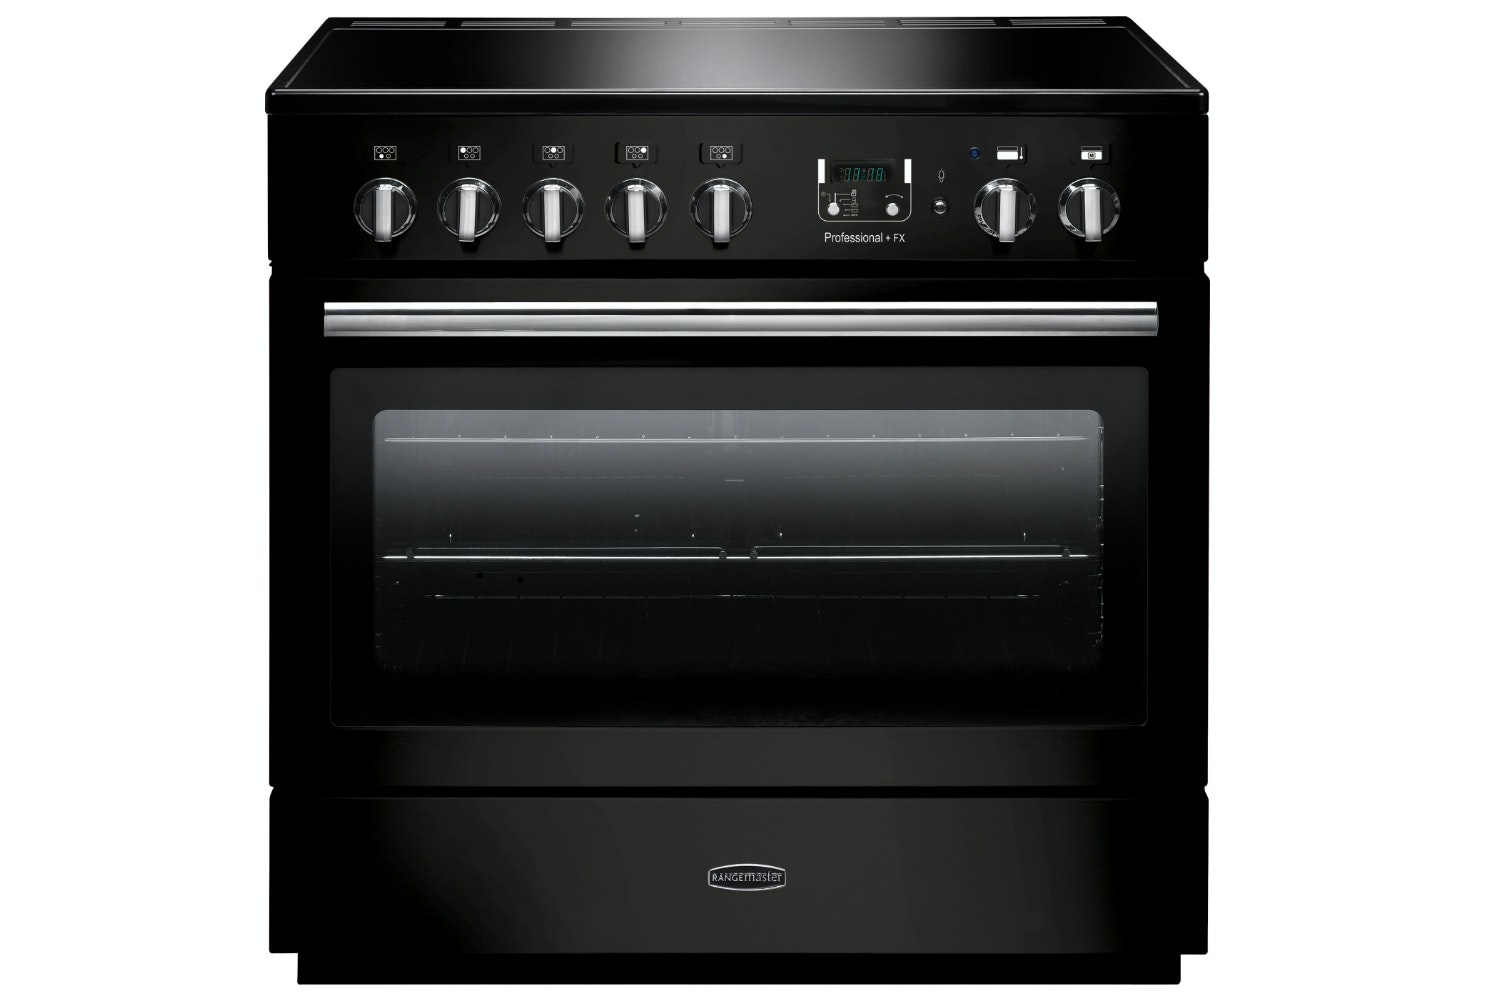 Rangemaster Pro Plus FX 90cm Induction | PROP90FXEIGB/C